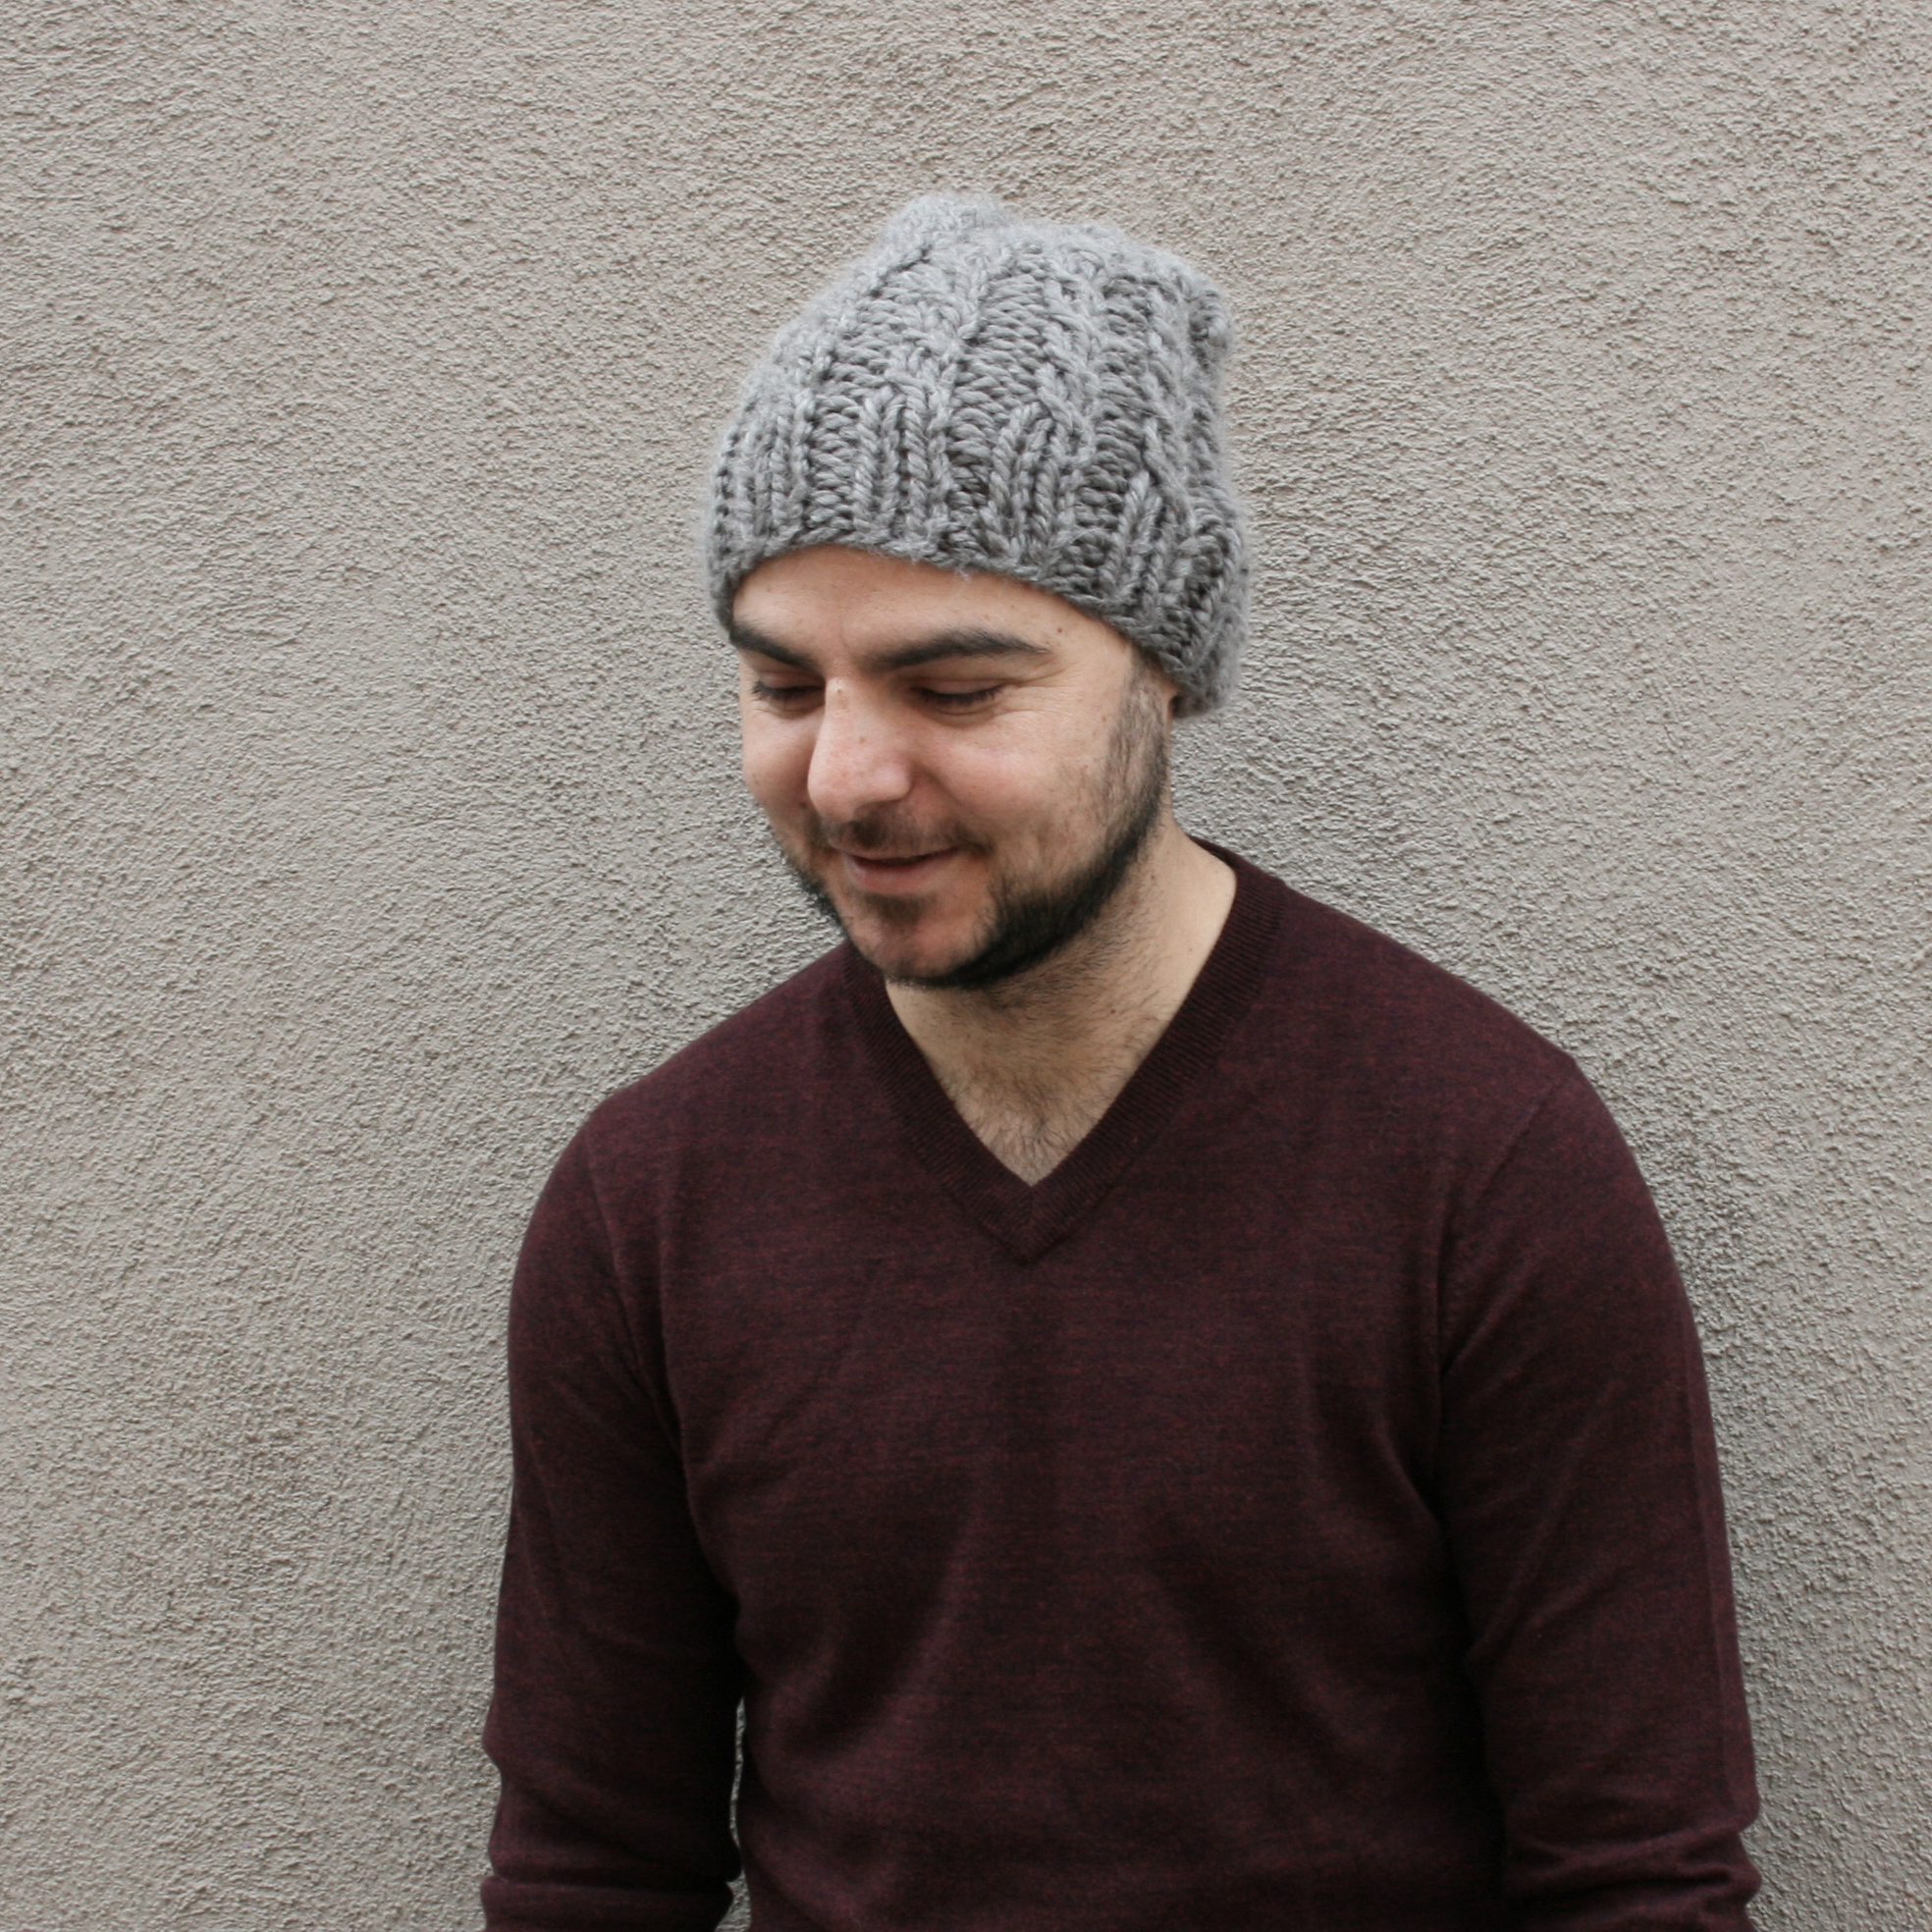 Pylon-chunky-knit-cable-ribbed-beanie-hat-knitting-pattern-by-elisemade